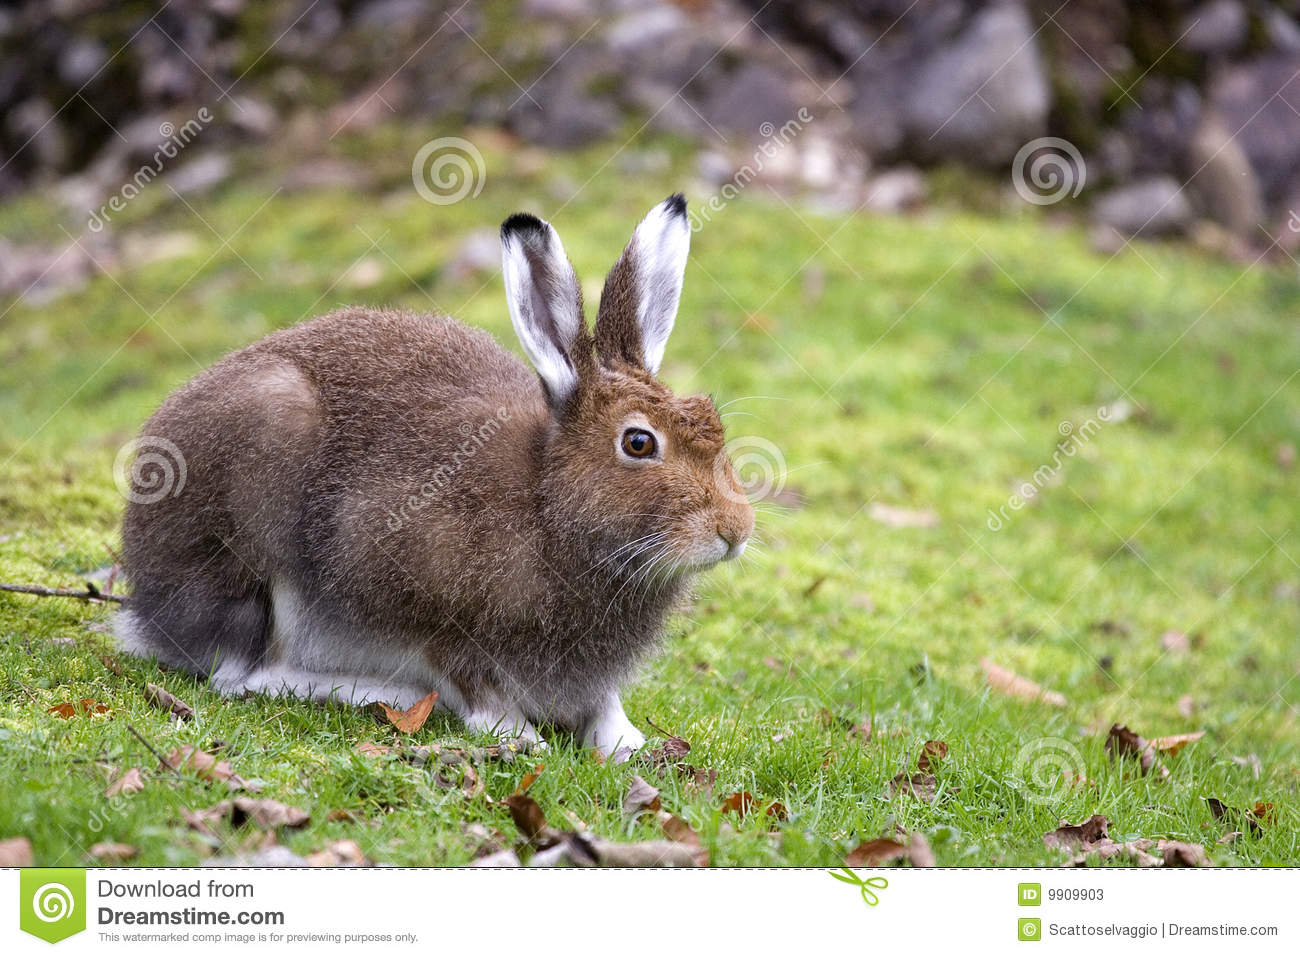 A closeup view of a Mountain Hare. Species: Lepus timidus